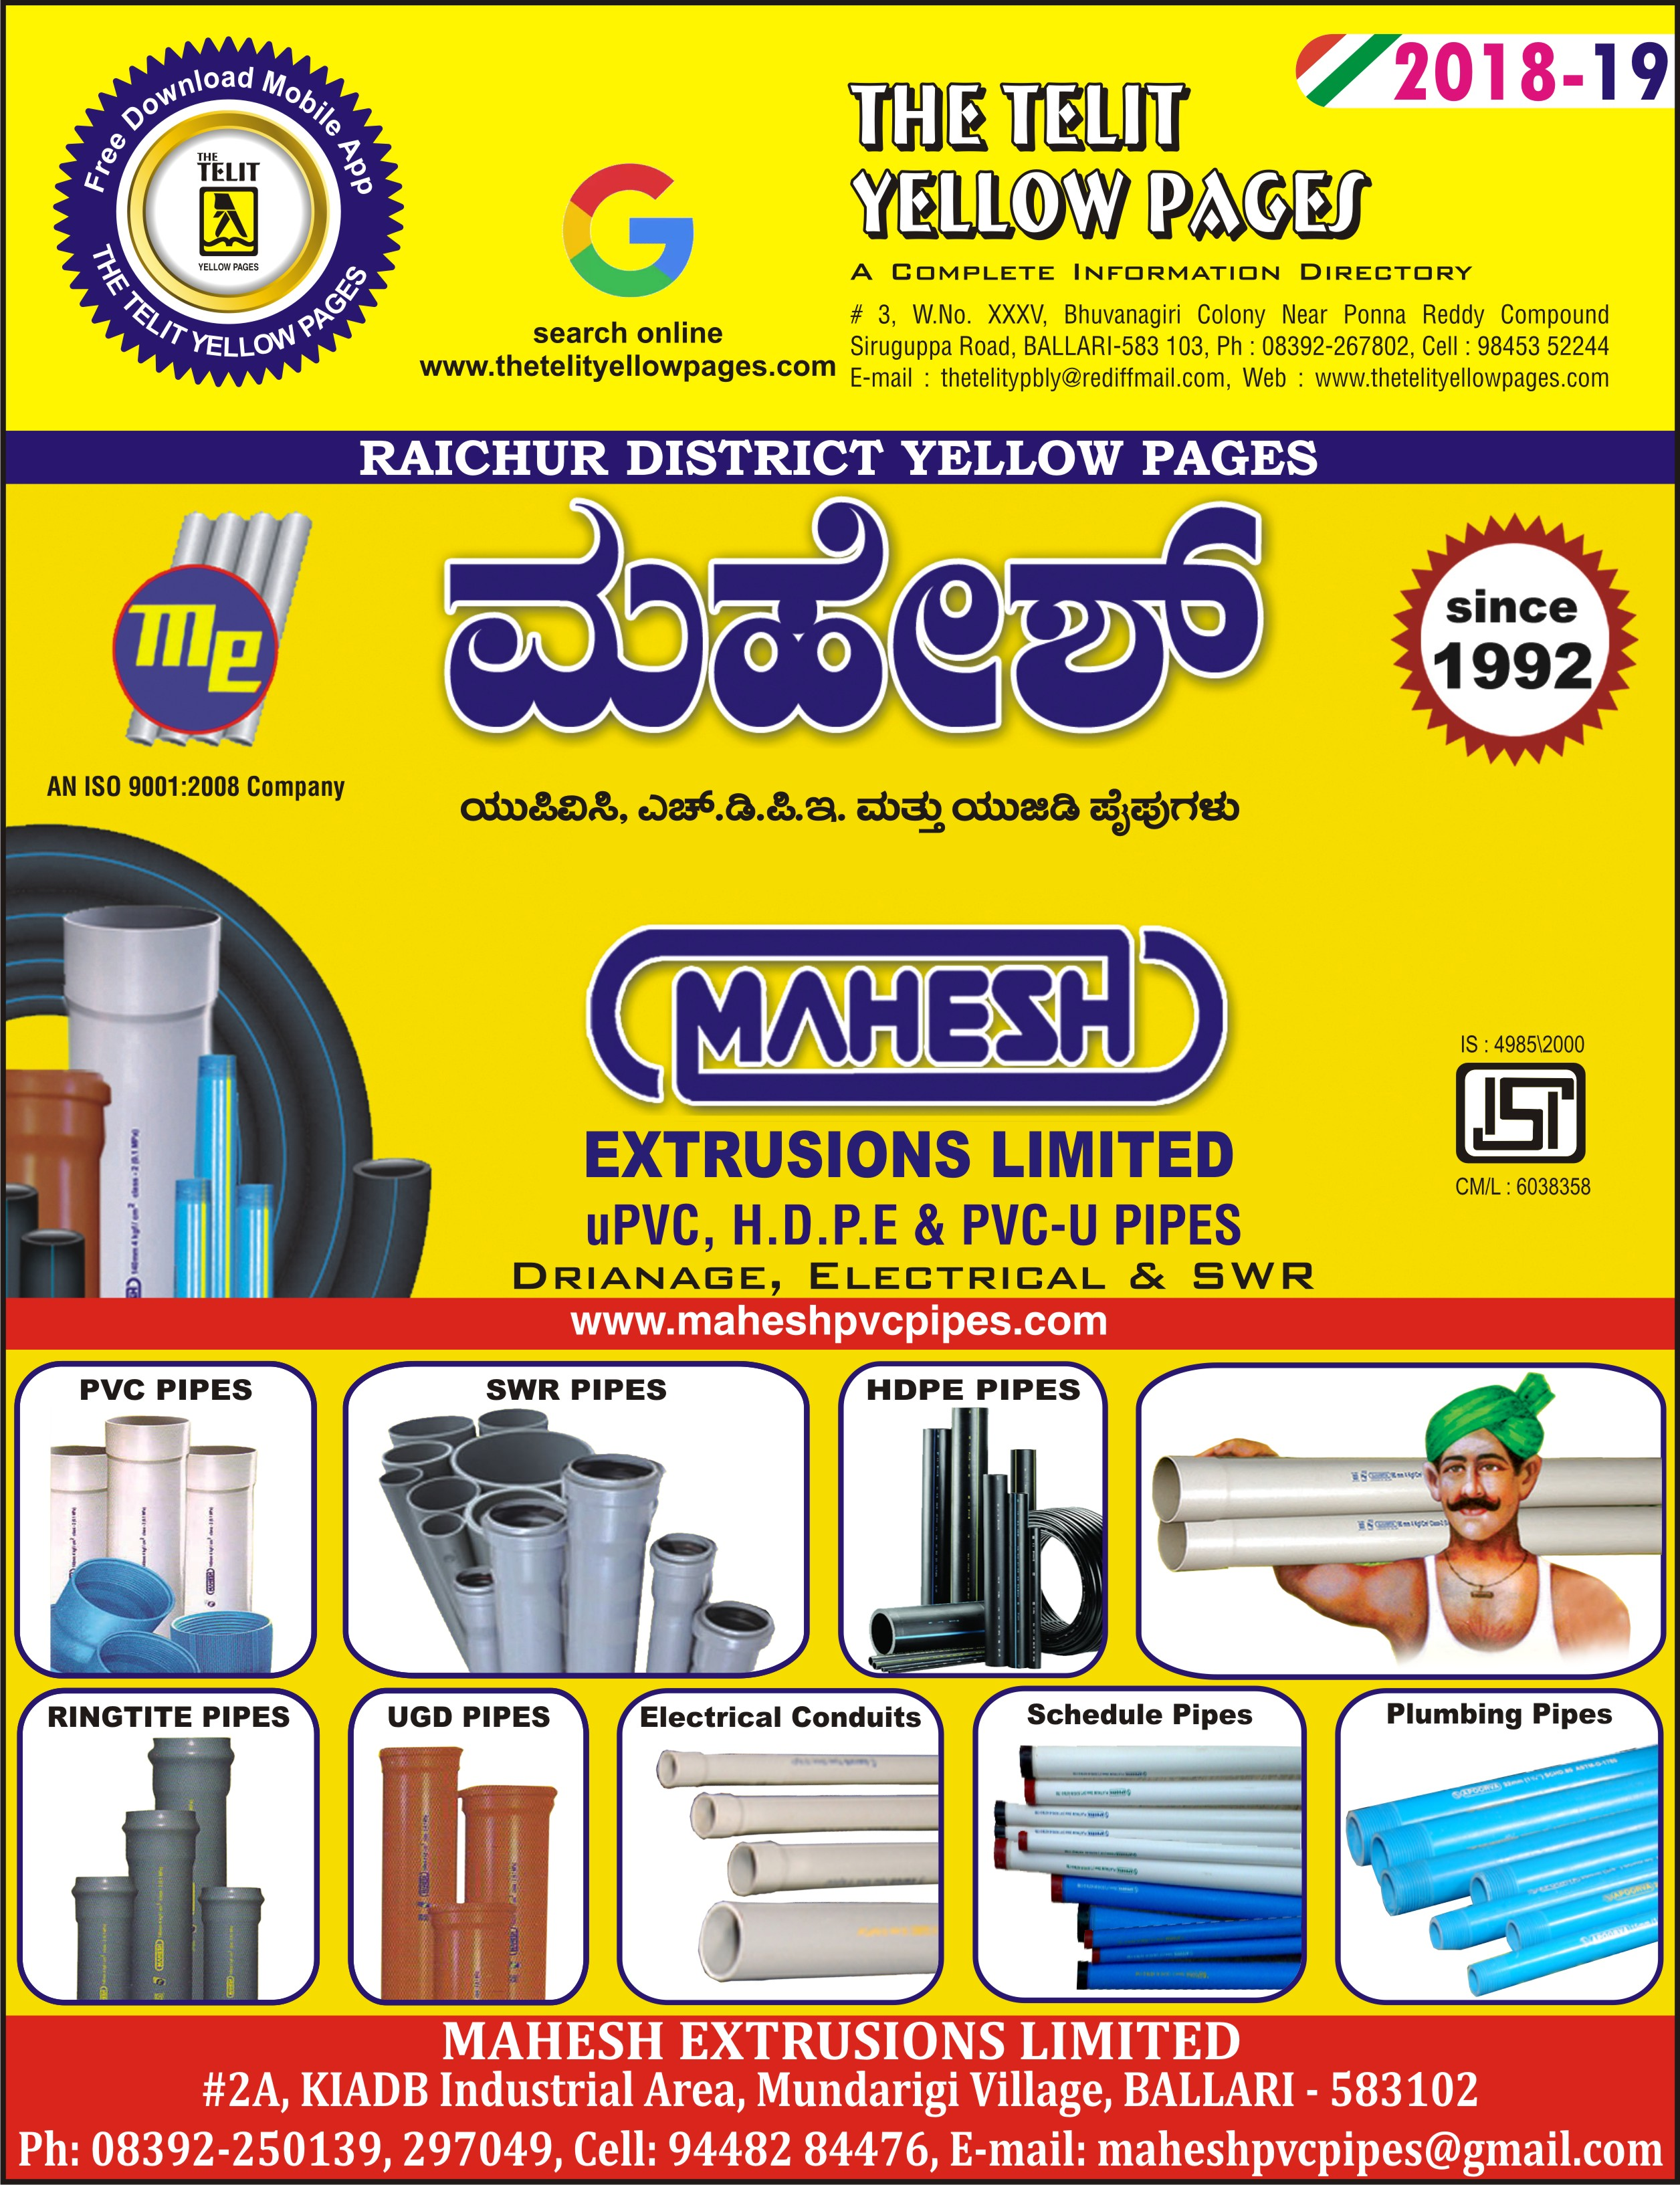 Mahesh Extrusions Limited